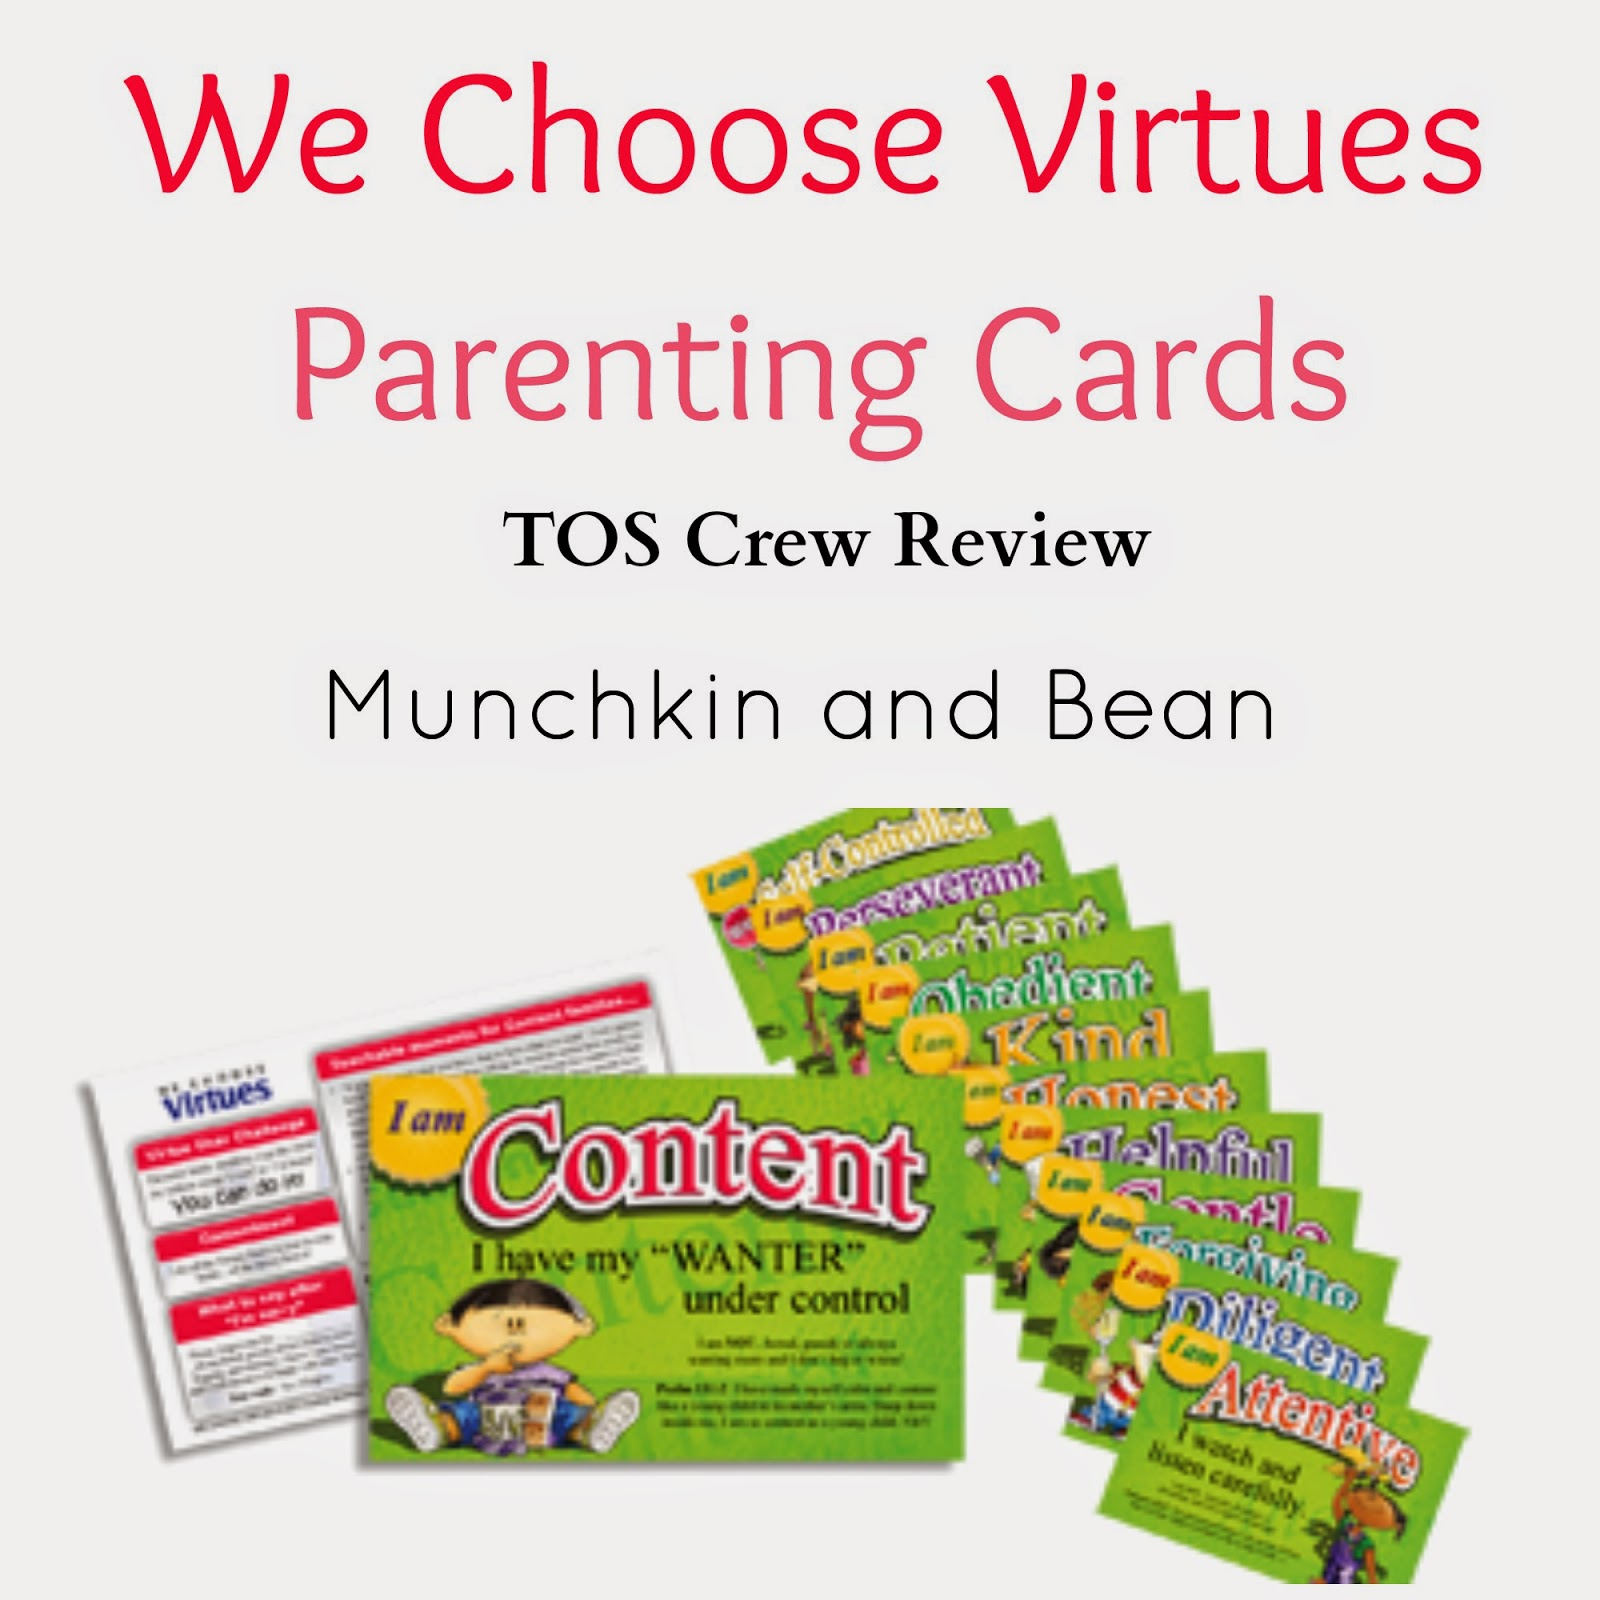 Munchkin And Bean: We Choose Virtues Parenting Cards Review